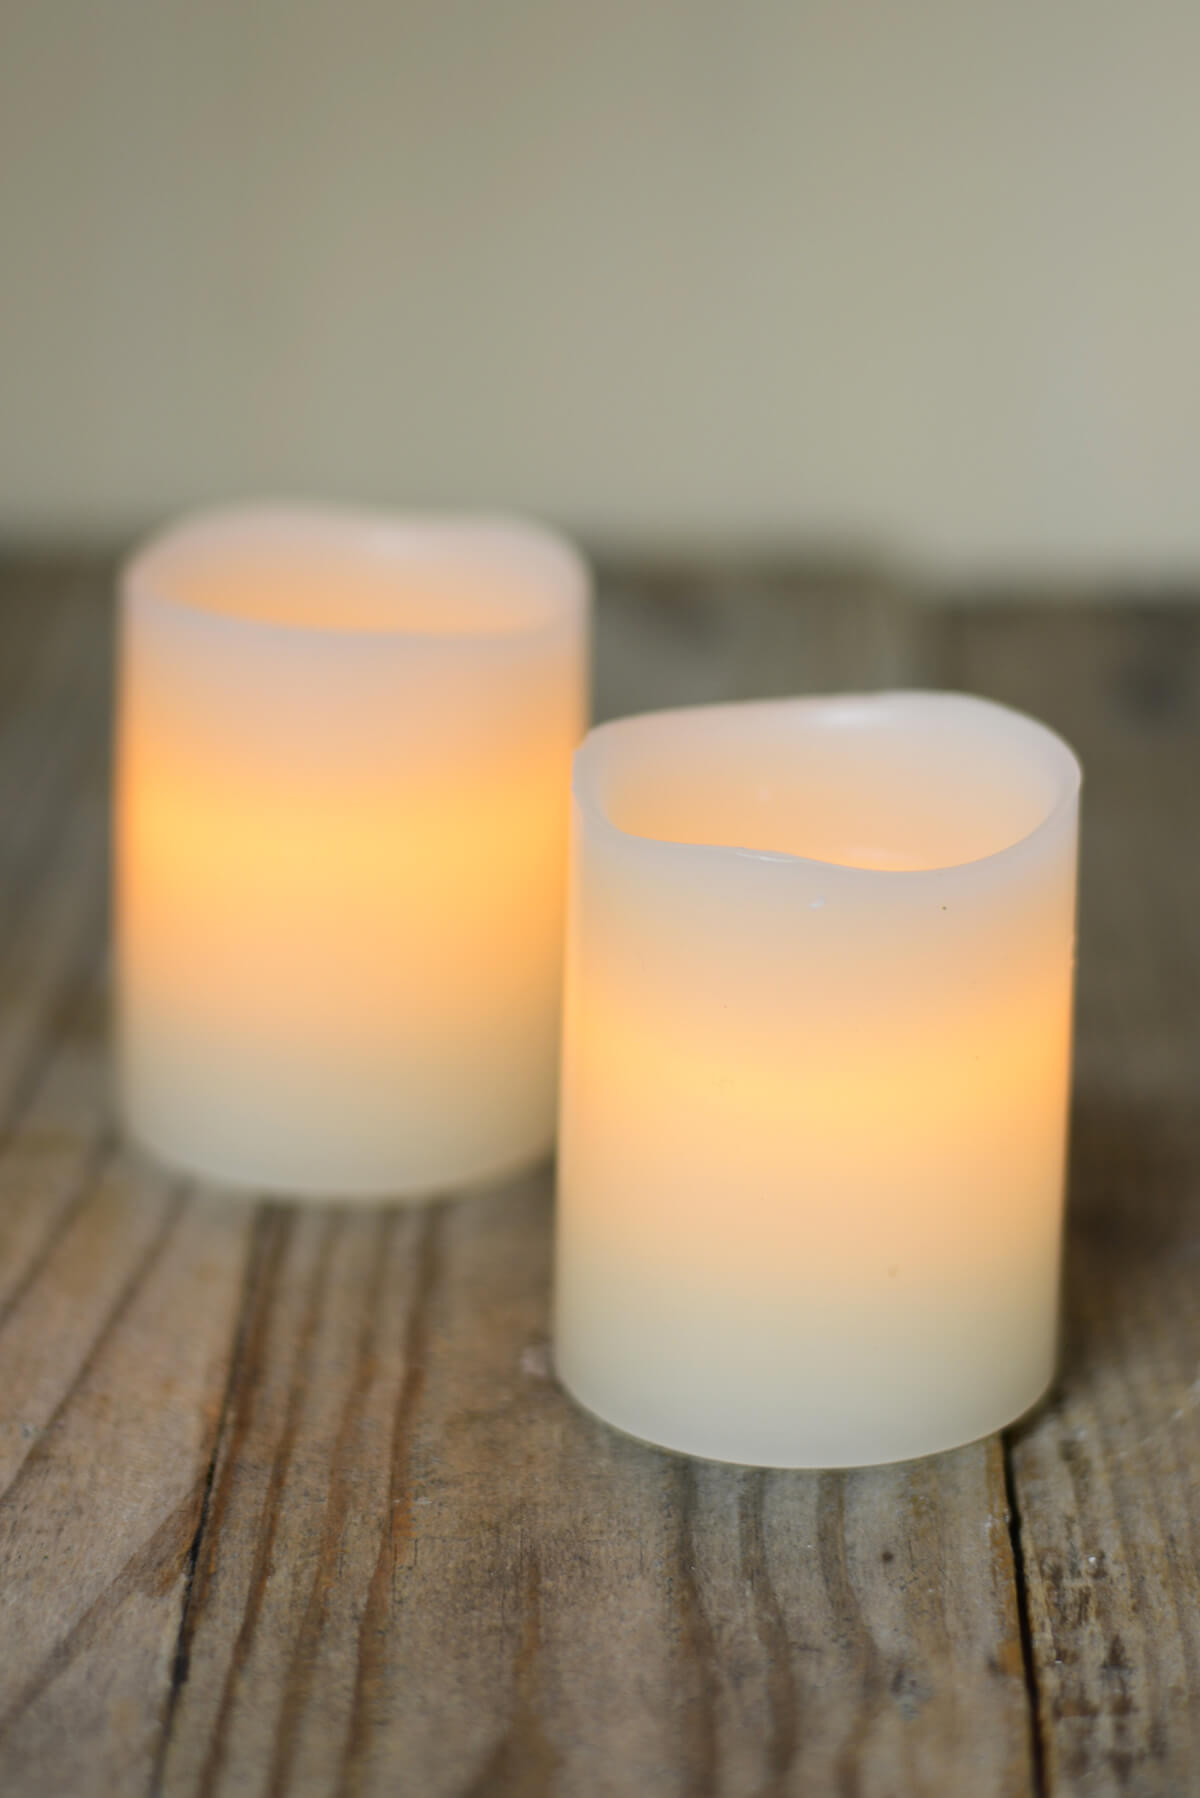 Multi Wick Candles 5 Wick Candles Images Reverse Search